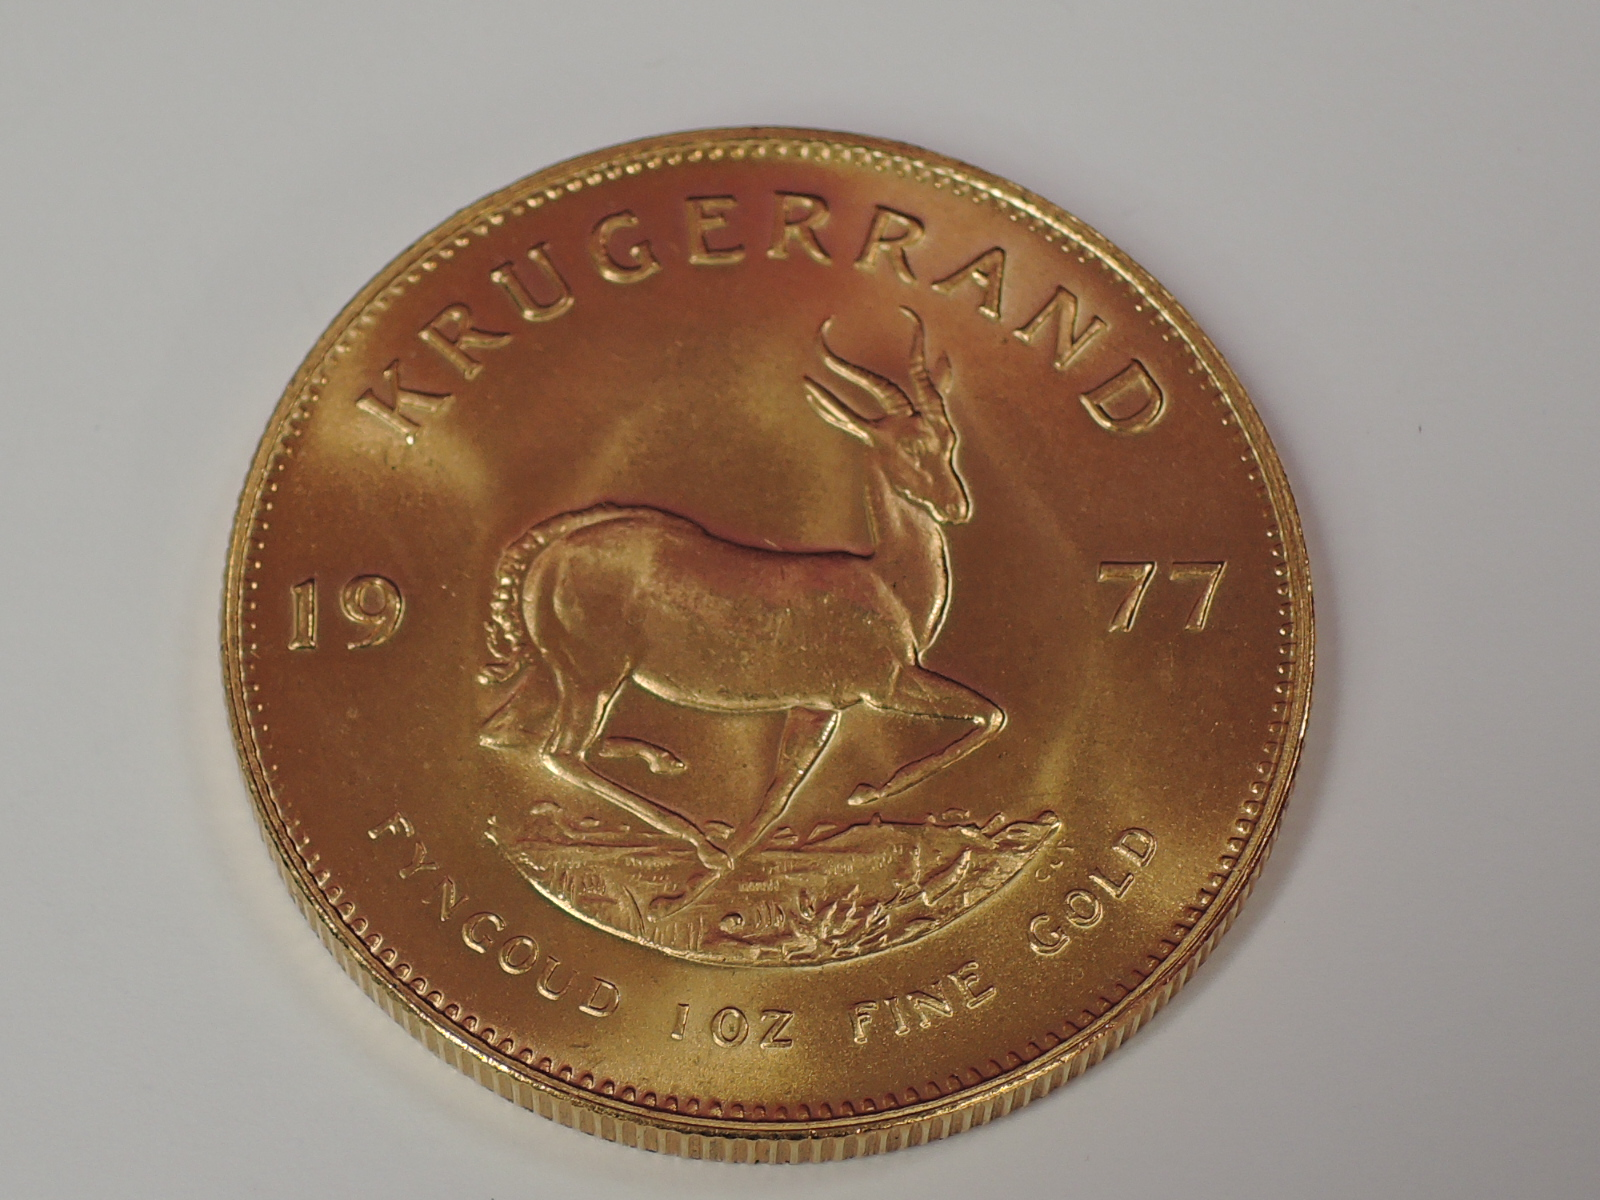 Lot 621 - A gold 1oz 1977 South African Krugerrand coin, in plastic case